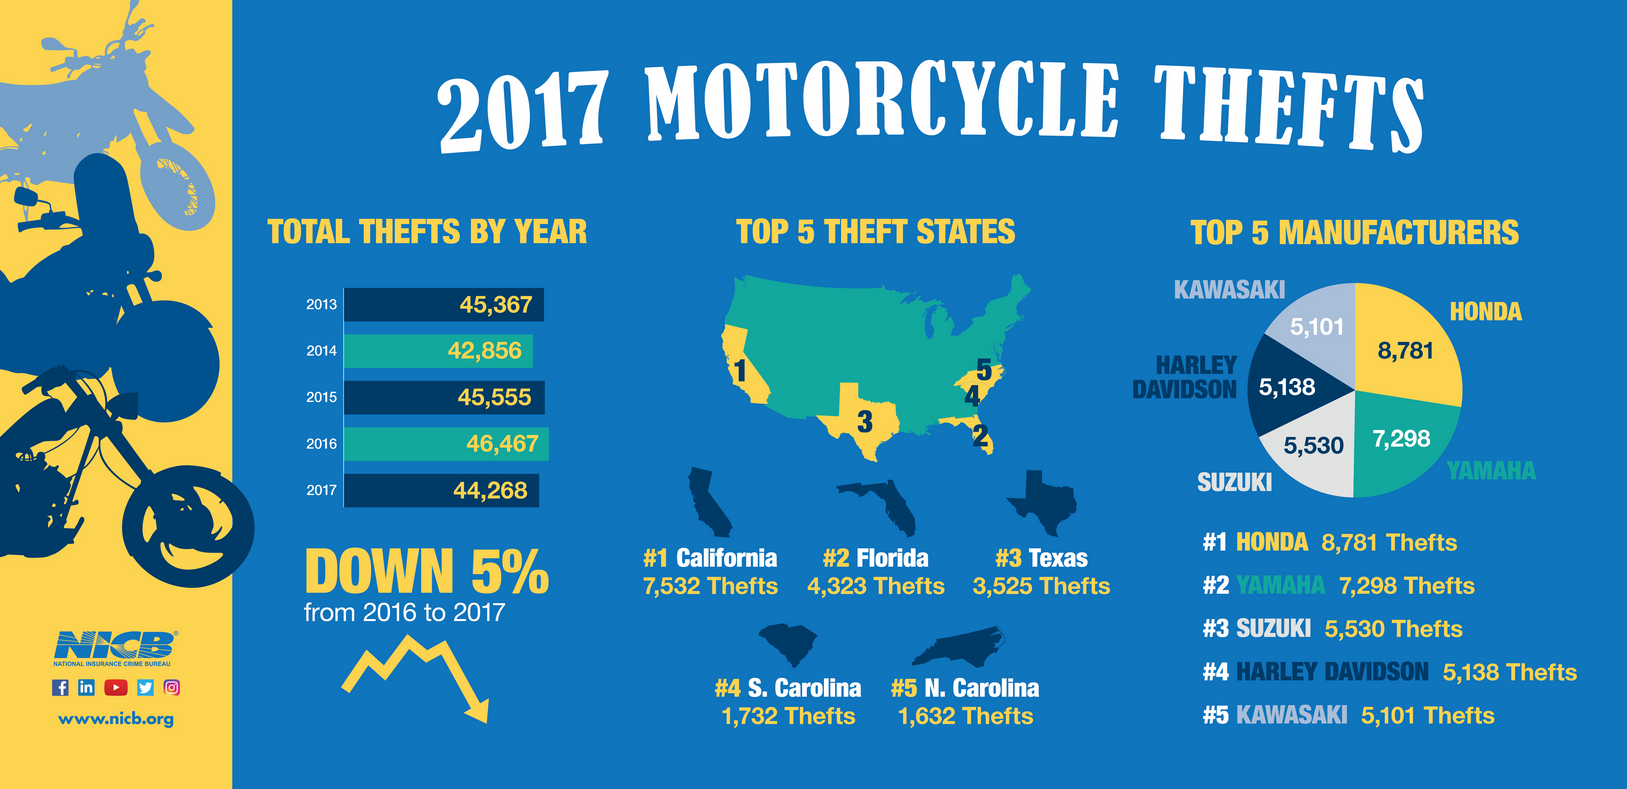 2017 Motorcycle Thefts